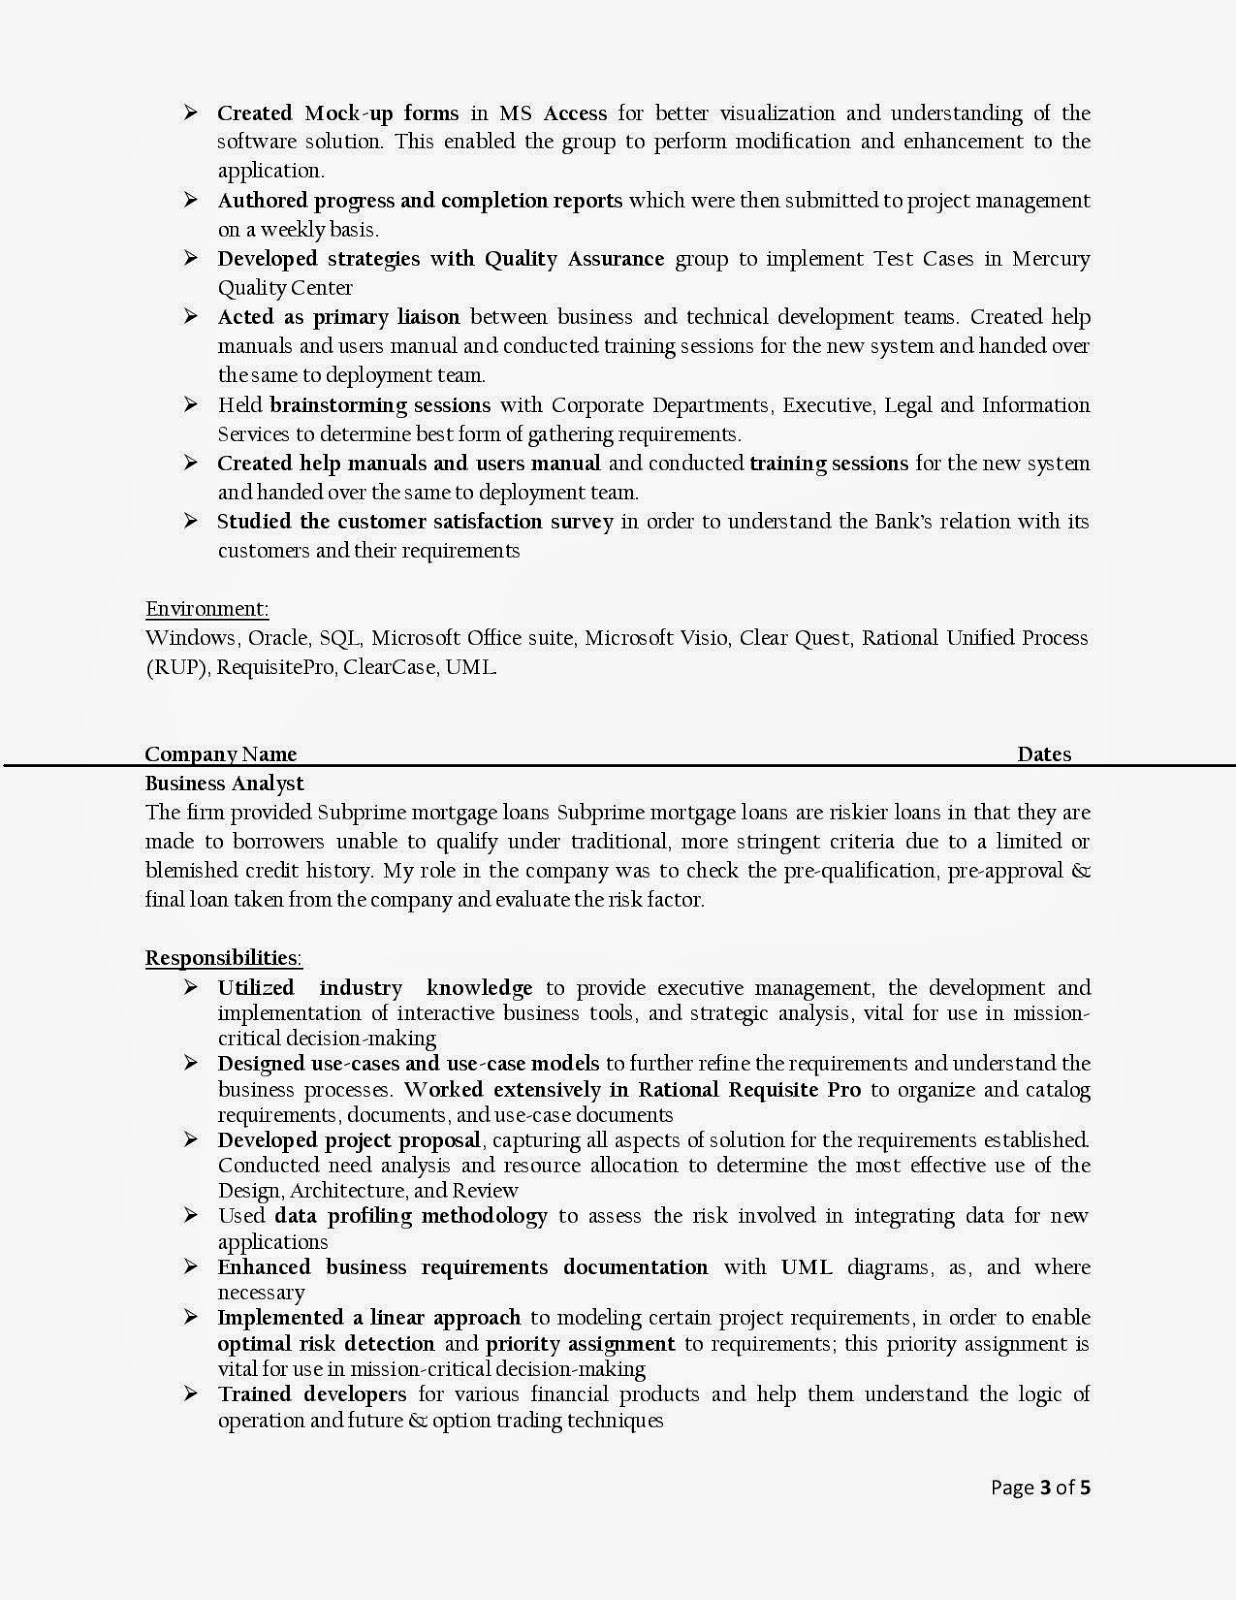 hris analyst resume data analyst resume example data analysis images of inventory specialist resume resume - Resume For Business Analyst Insurance Domain